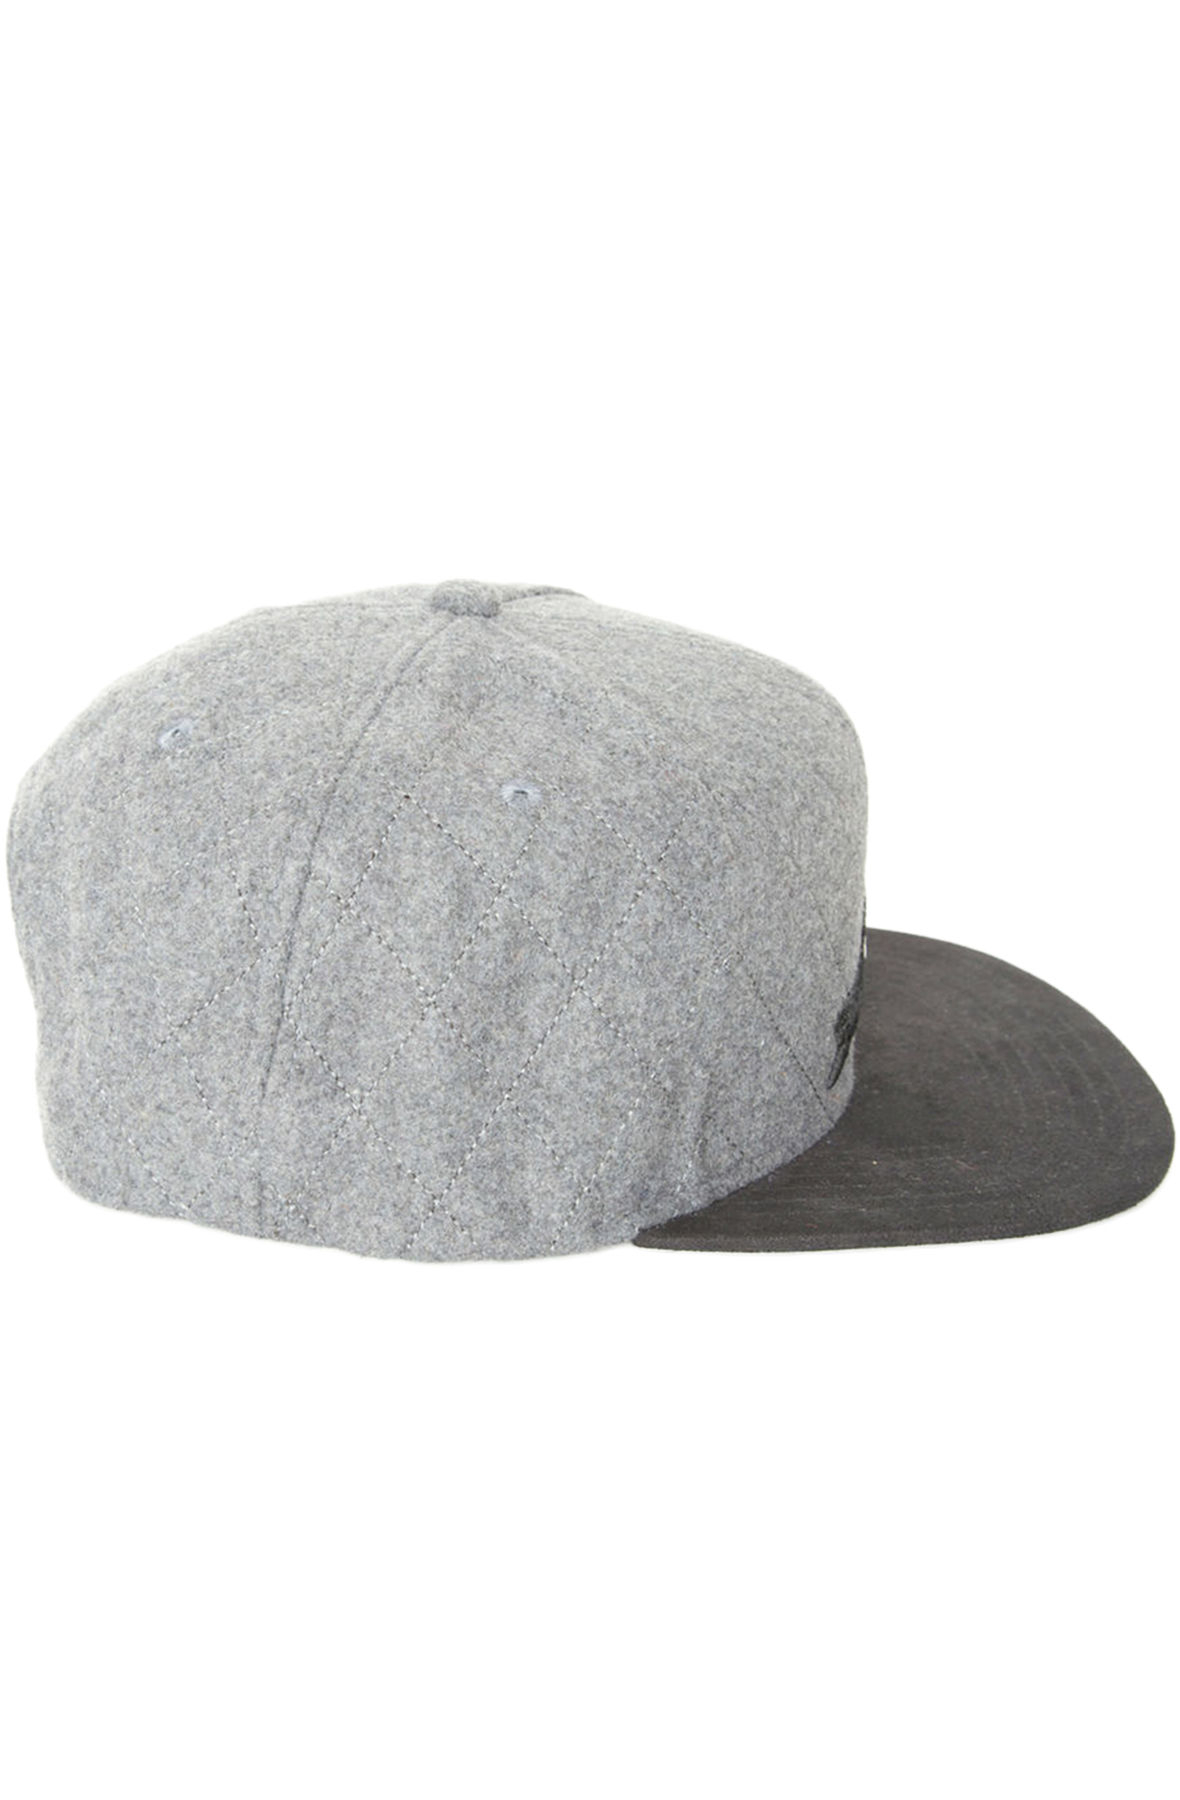 37659e53bc8 Lyst - Staple The Quilted Pigeon Snapback in Gray for Men